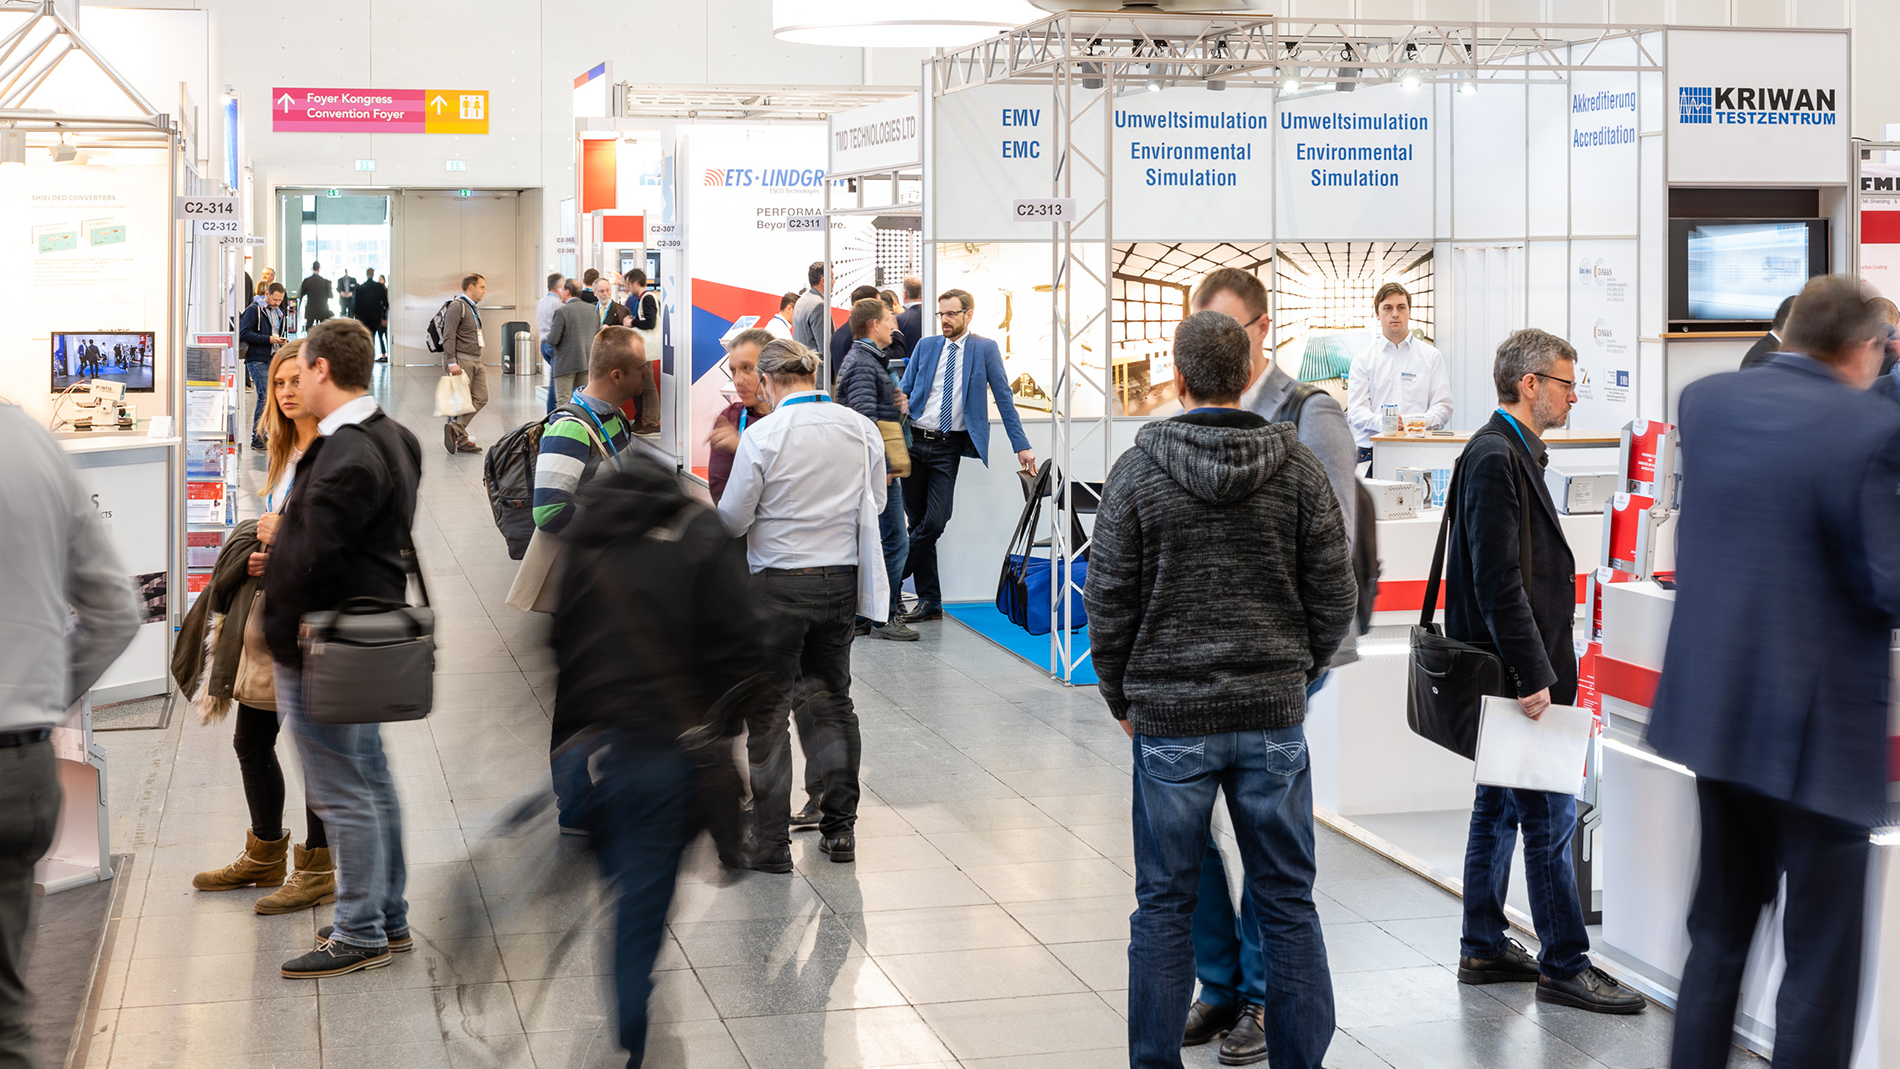 Atmosphere of the EMV trade fair